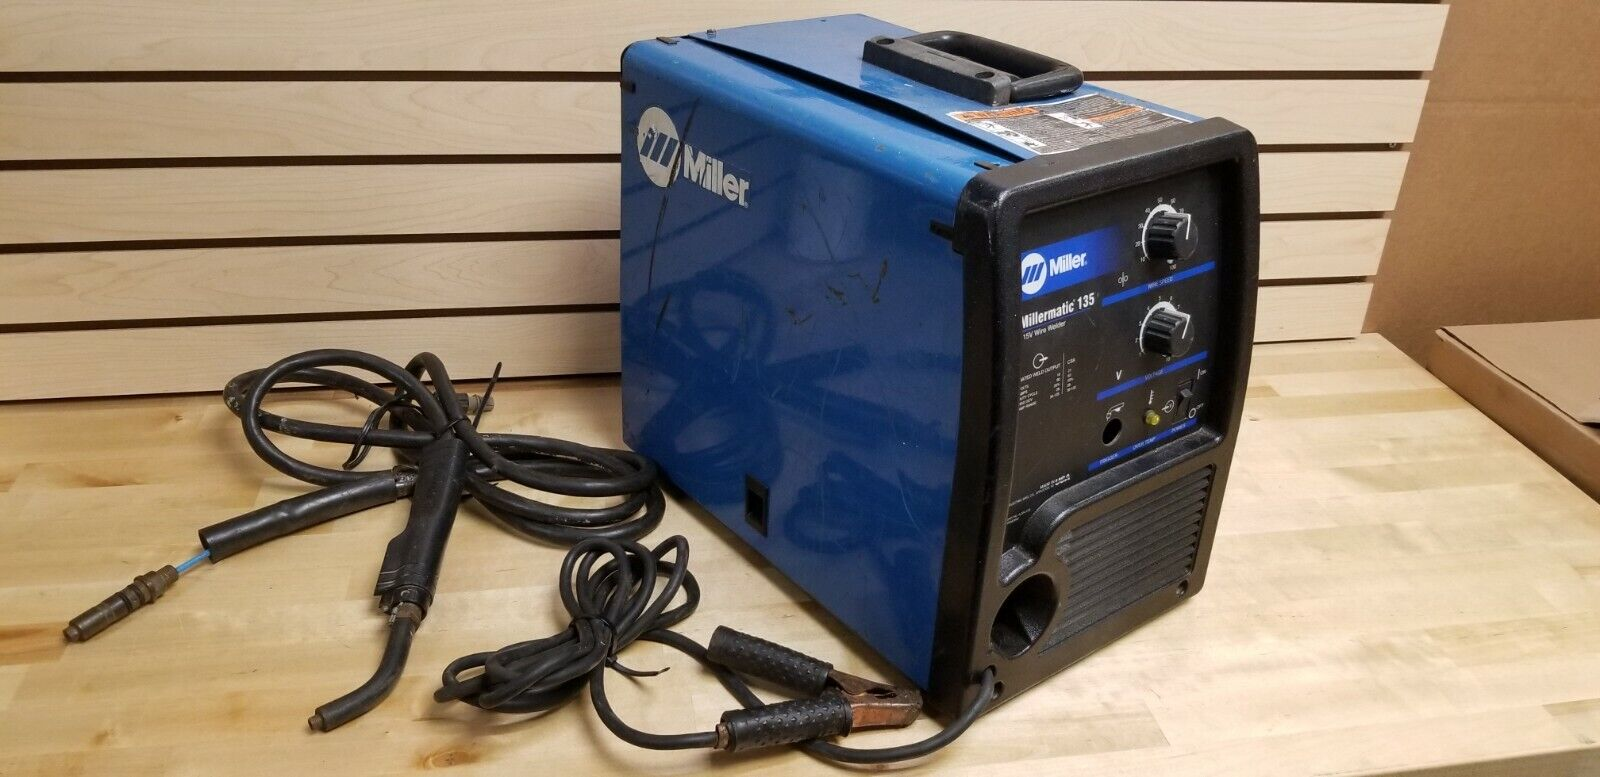 Miller Millermatic 135 Wire Welder Welding Machine - Blue. Available Now for 599.99